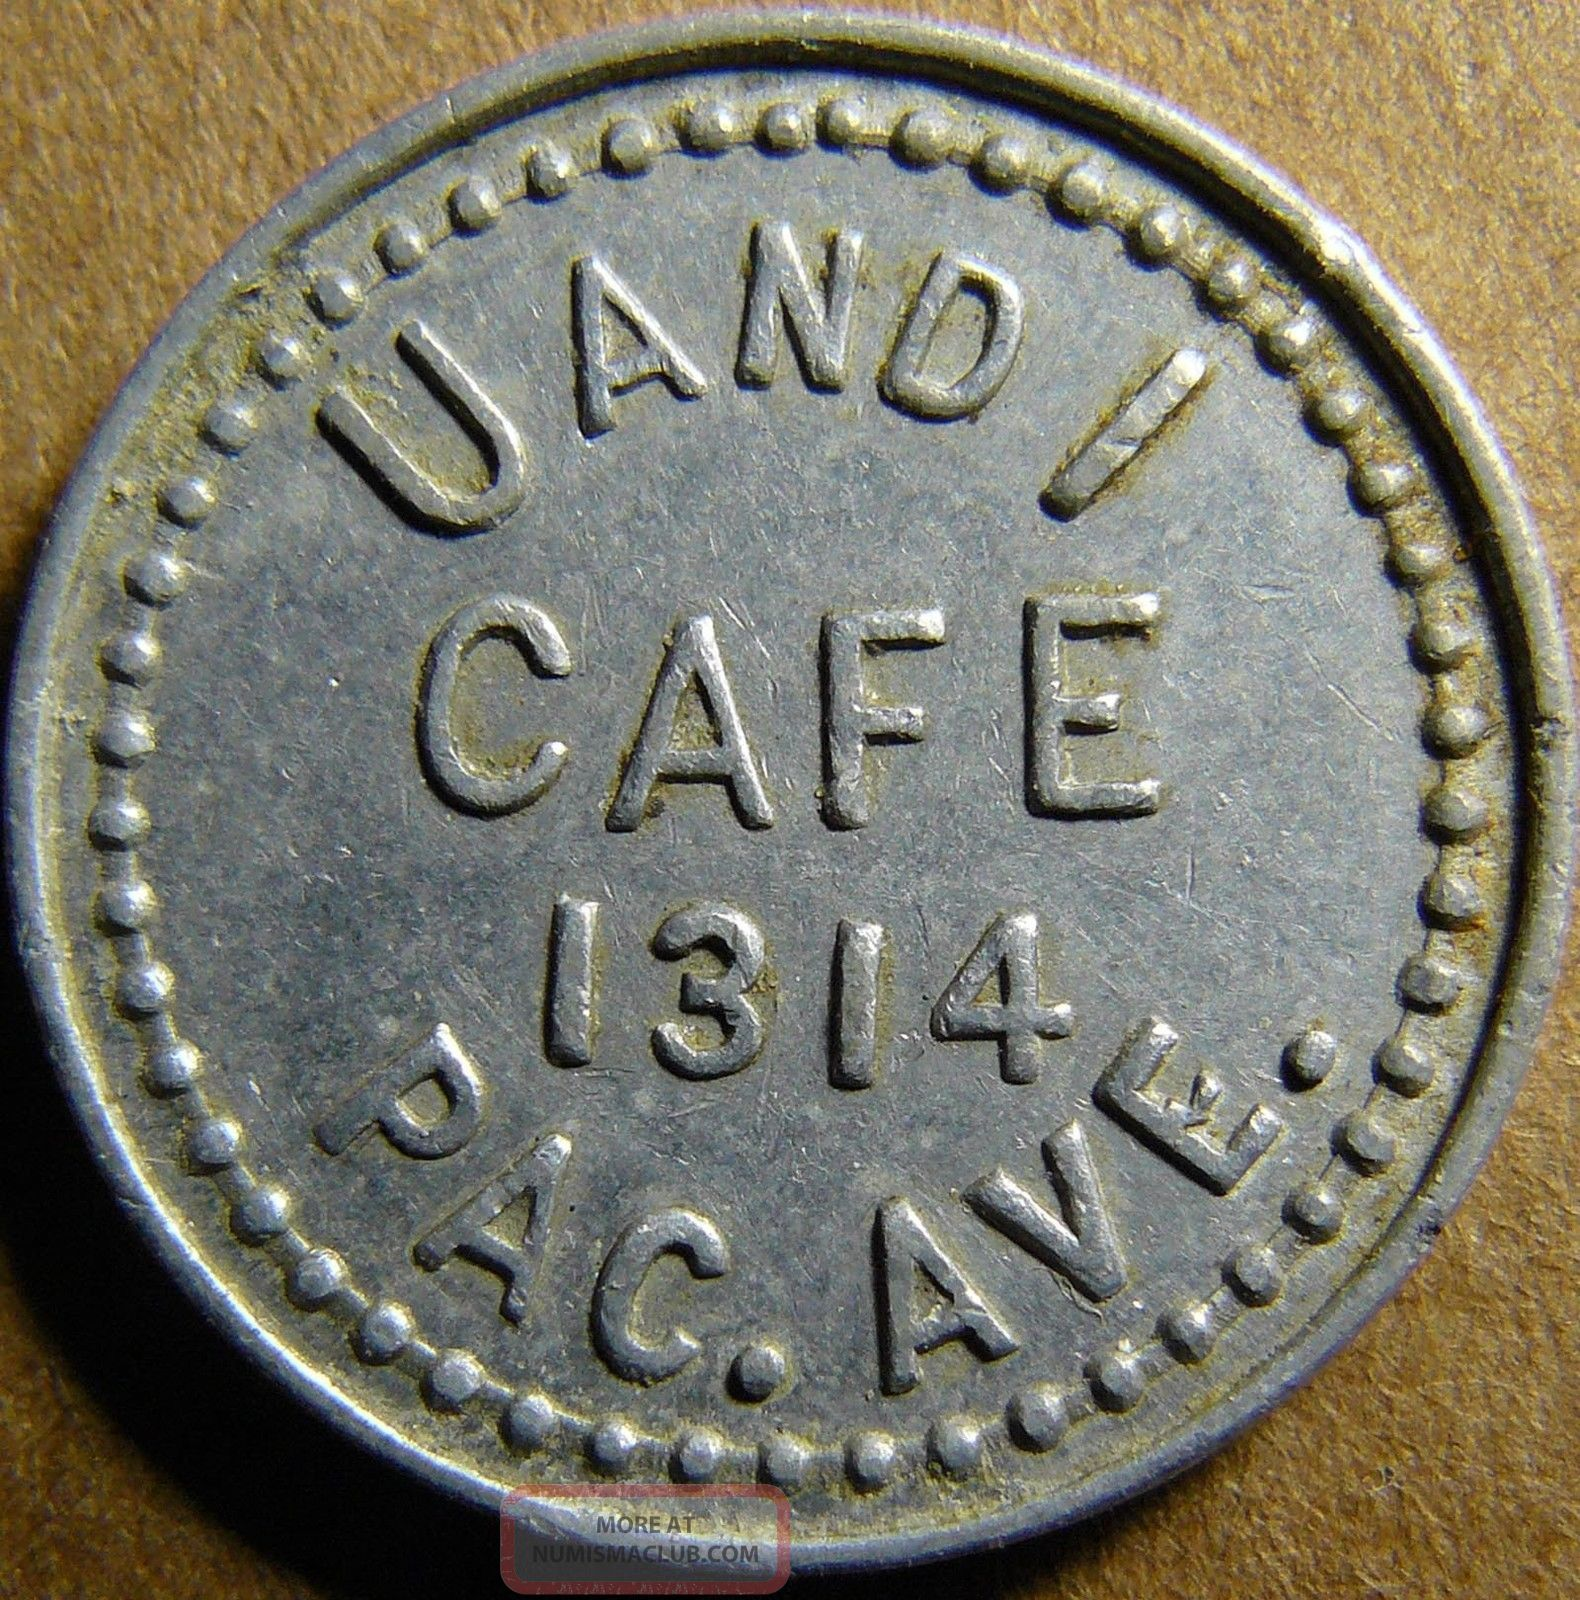 Tacoma Washington U And I Cafe 5c Good For Token Exonumia photo